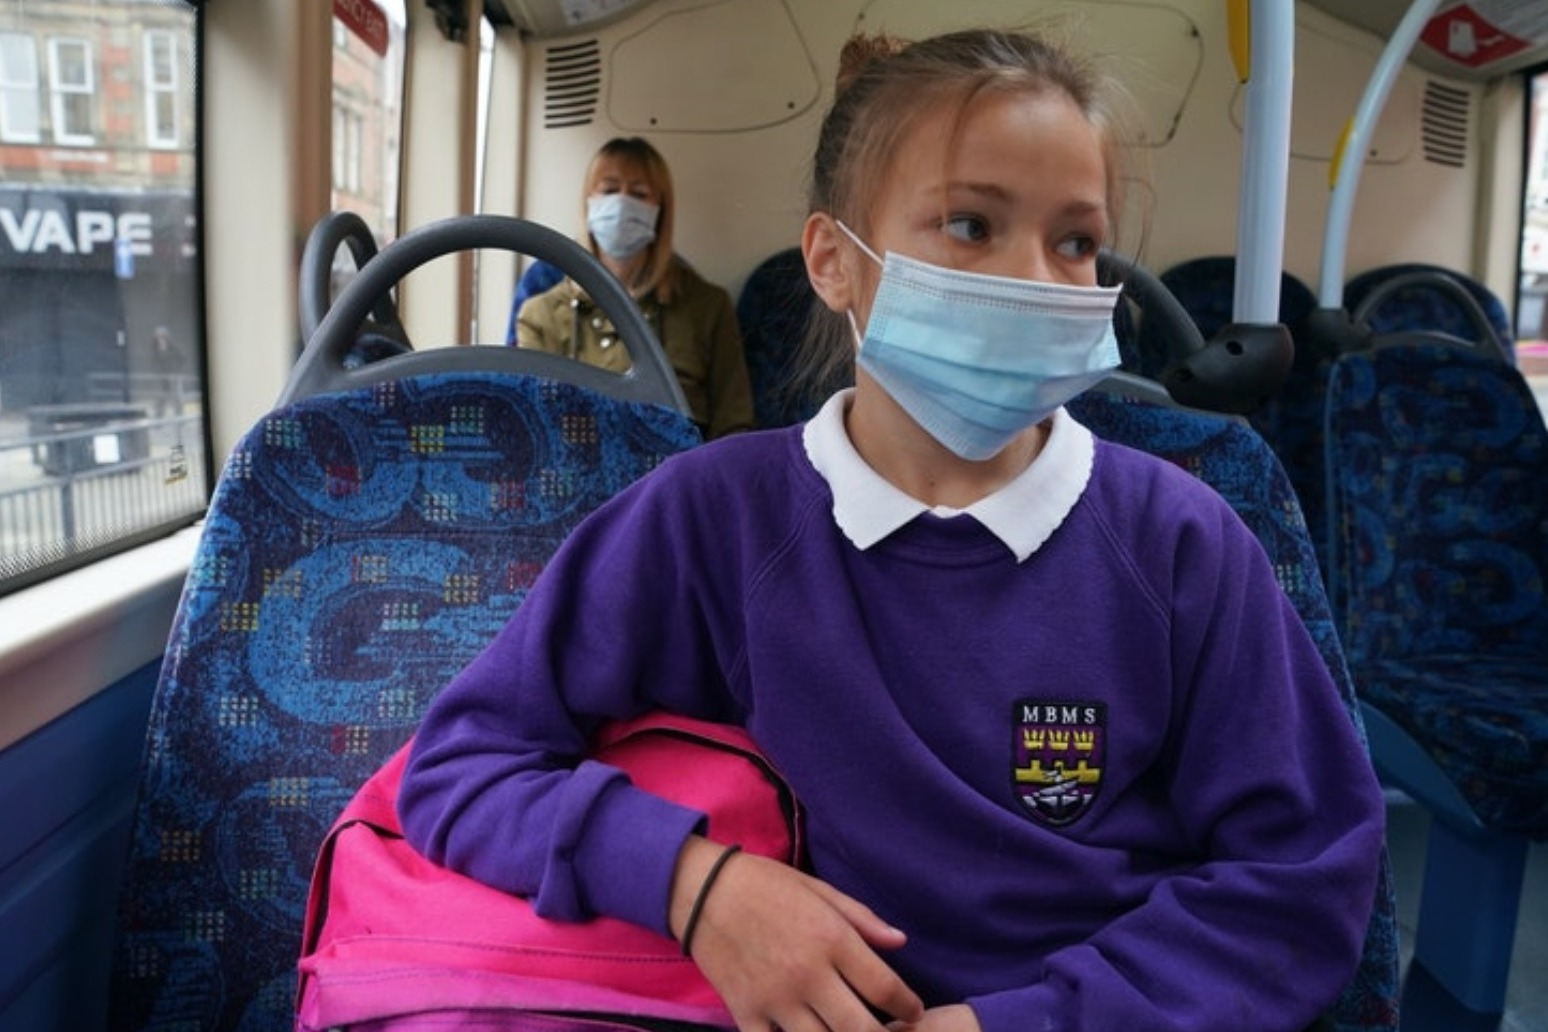 Keep masks in schools option under review, urges education union